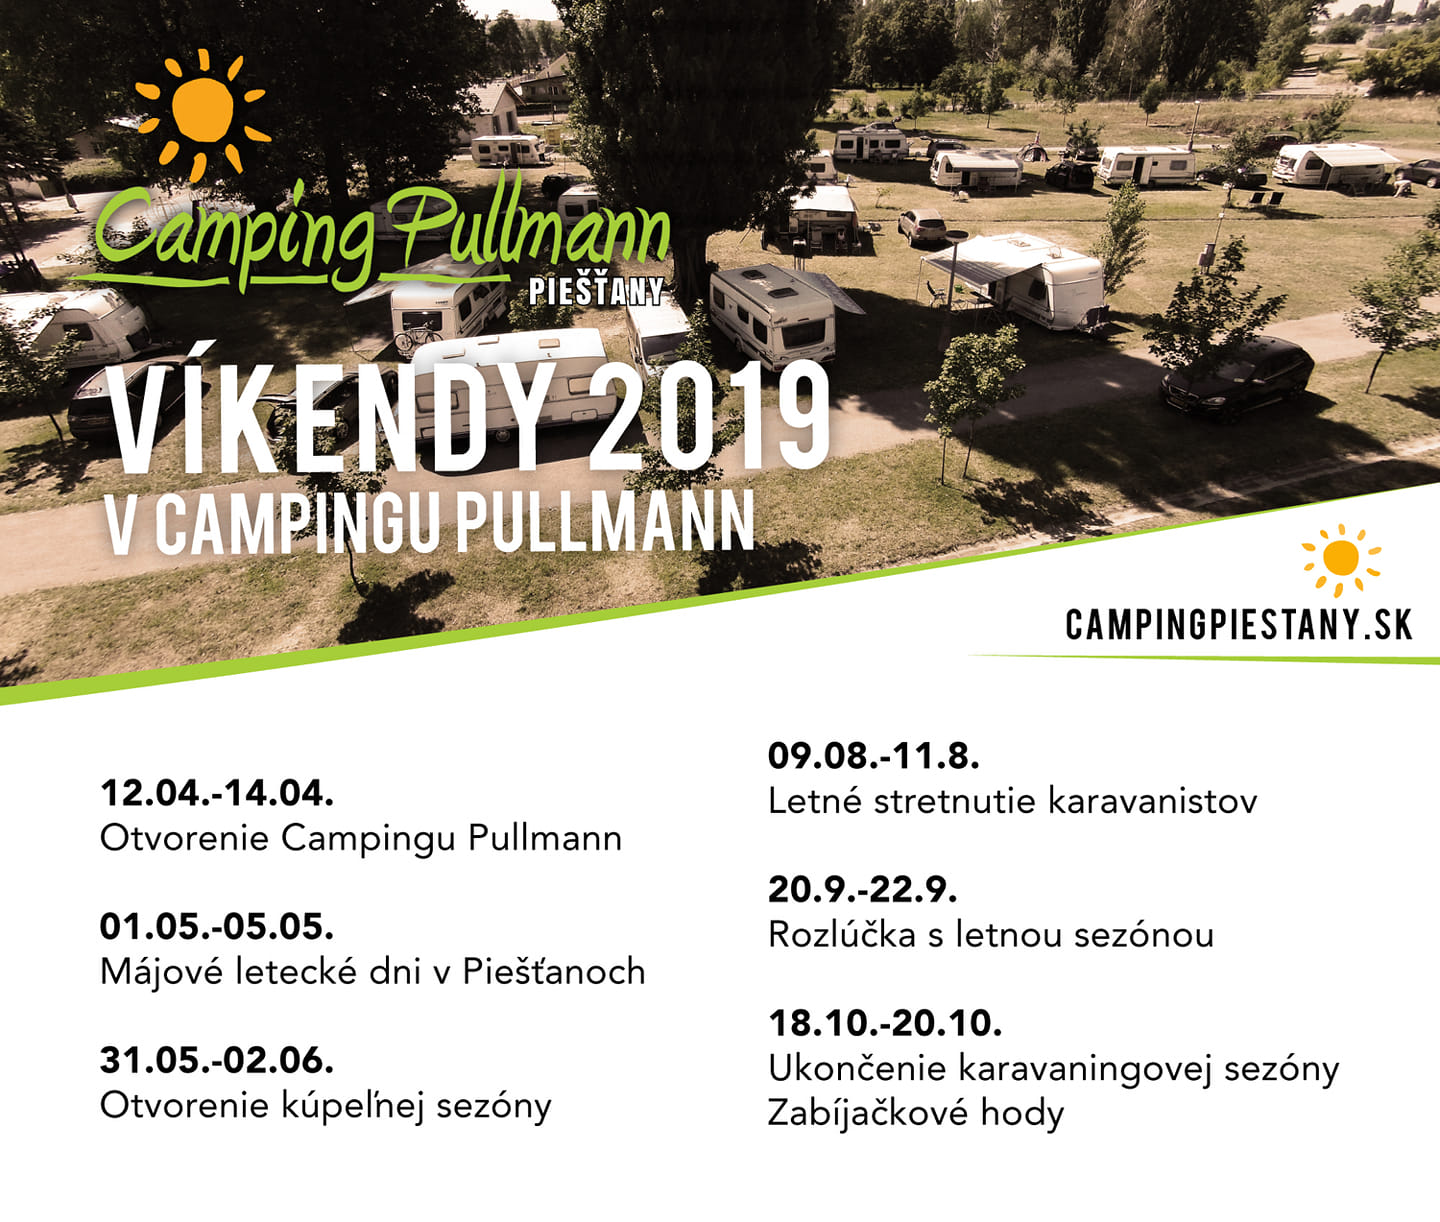 camp vikendy